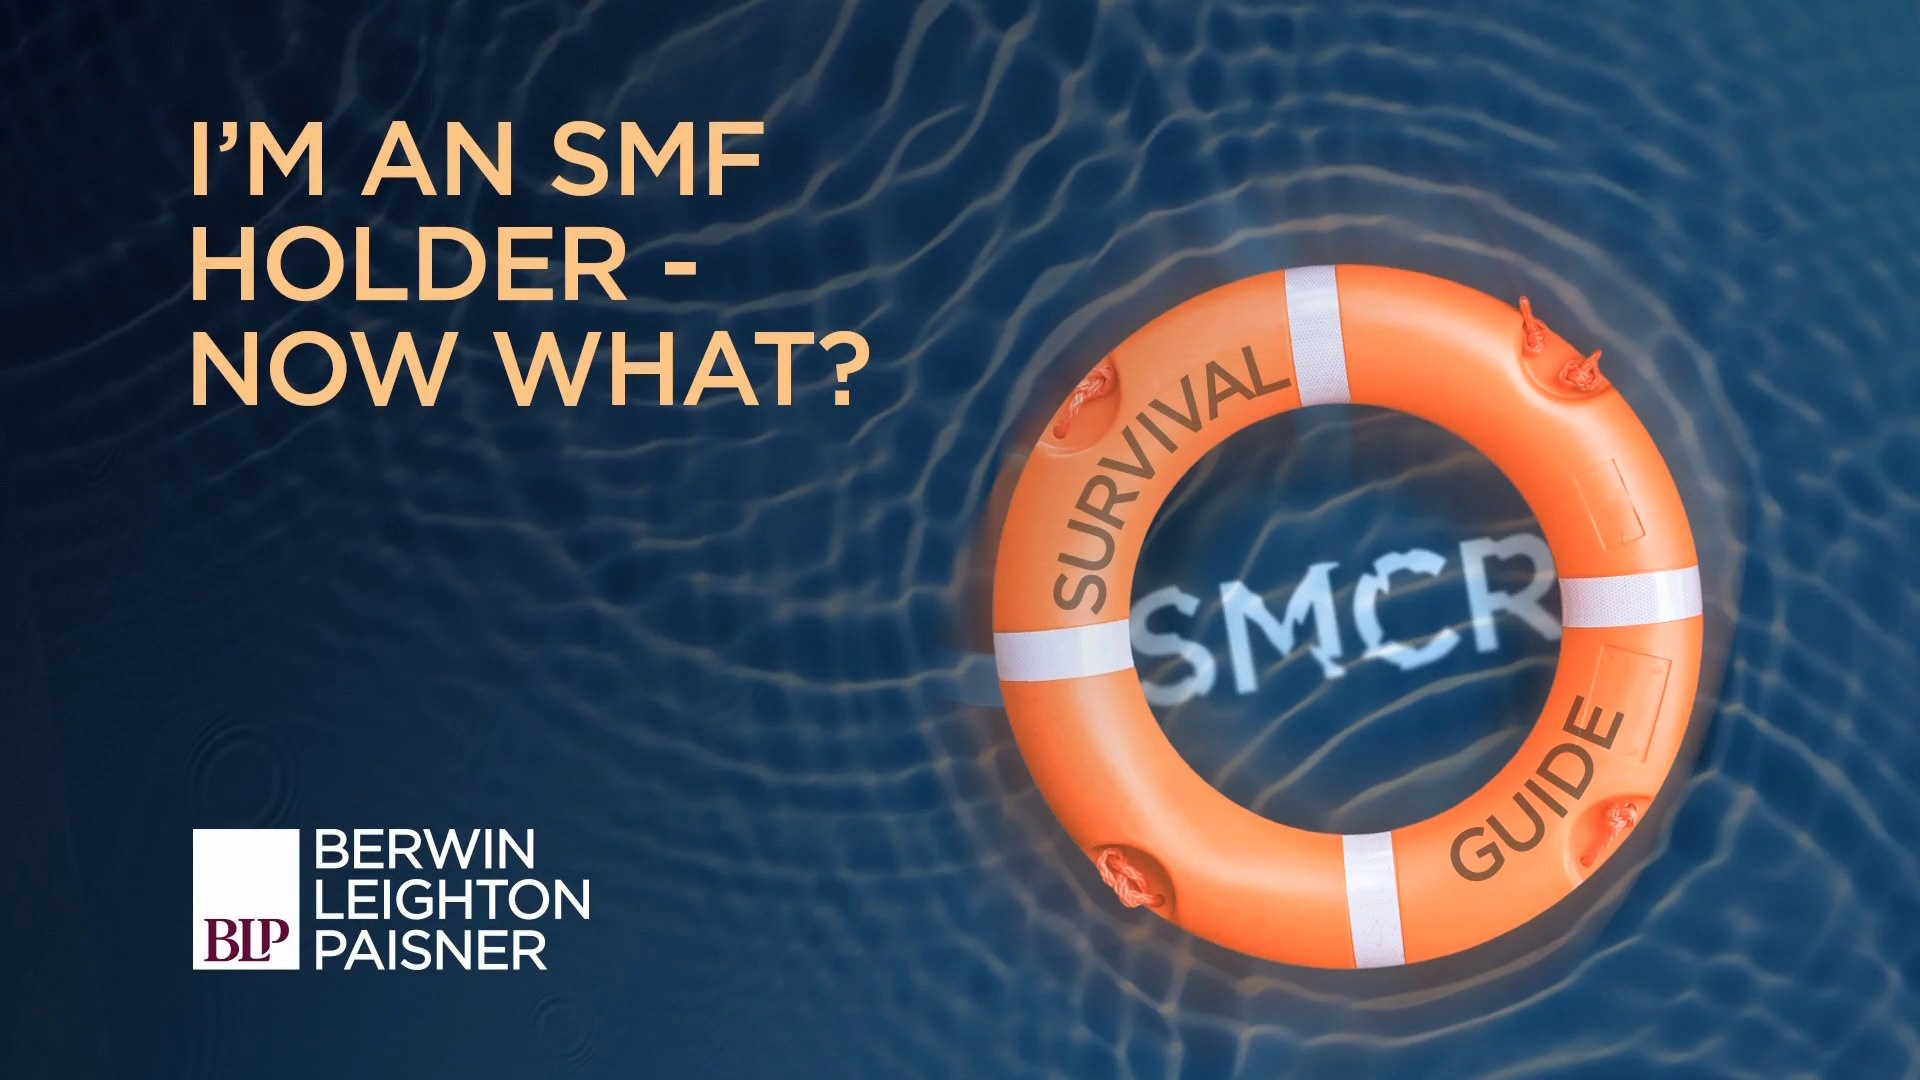 Still image from 'SMCR: I'm an SMF holder - now what?' video